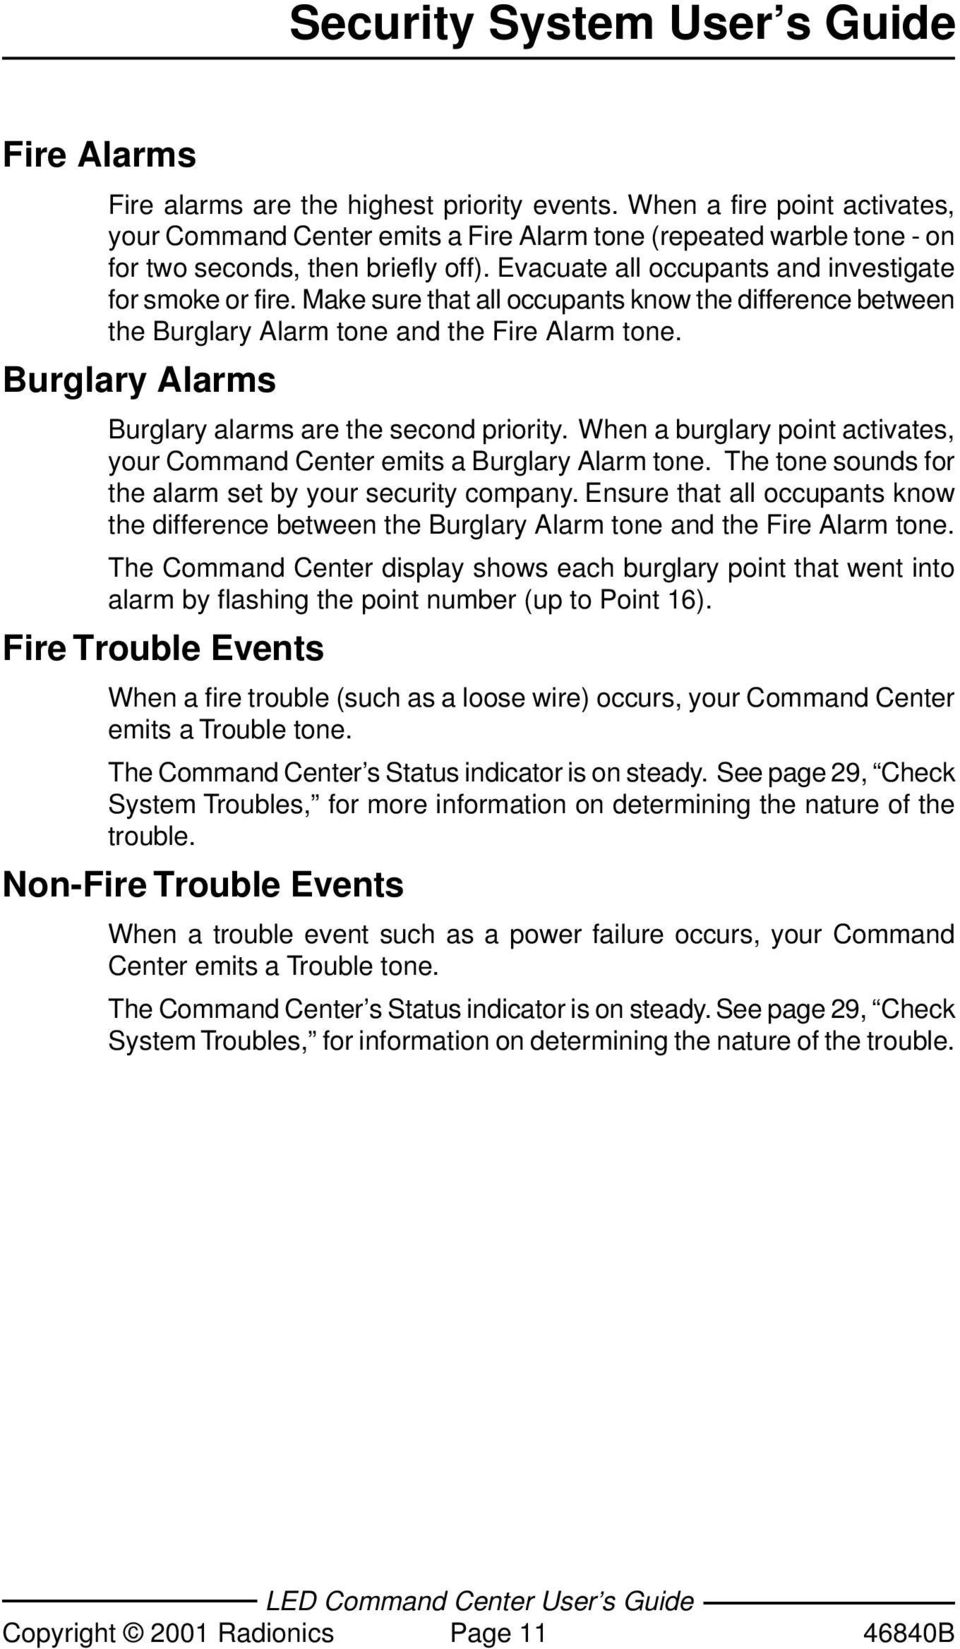 Burglary Alarms Burglary alarms are the second priority. When a burglary point activates, your Command Center emits a Burglary Alarm tone. The tone sounds for the alarm set by your security company.